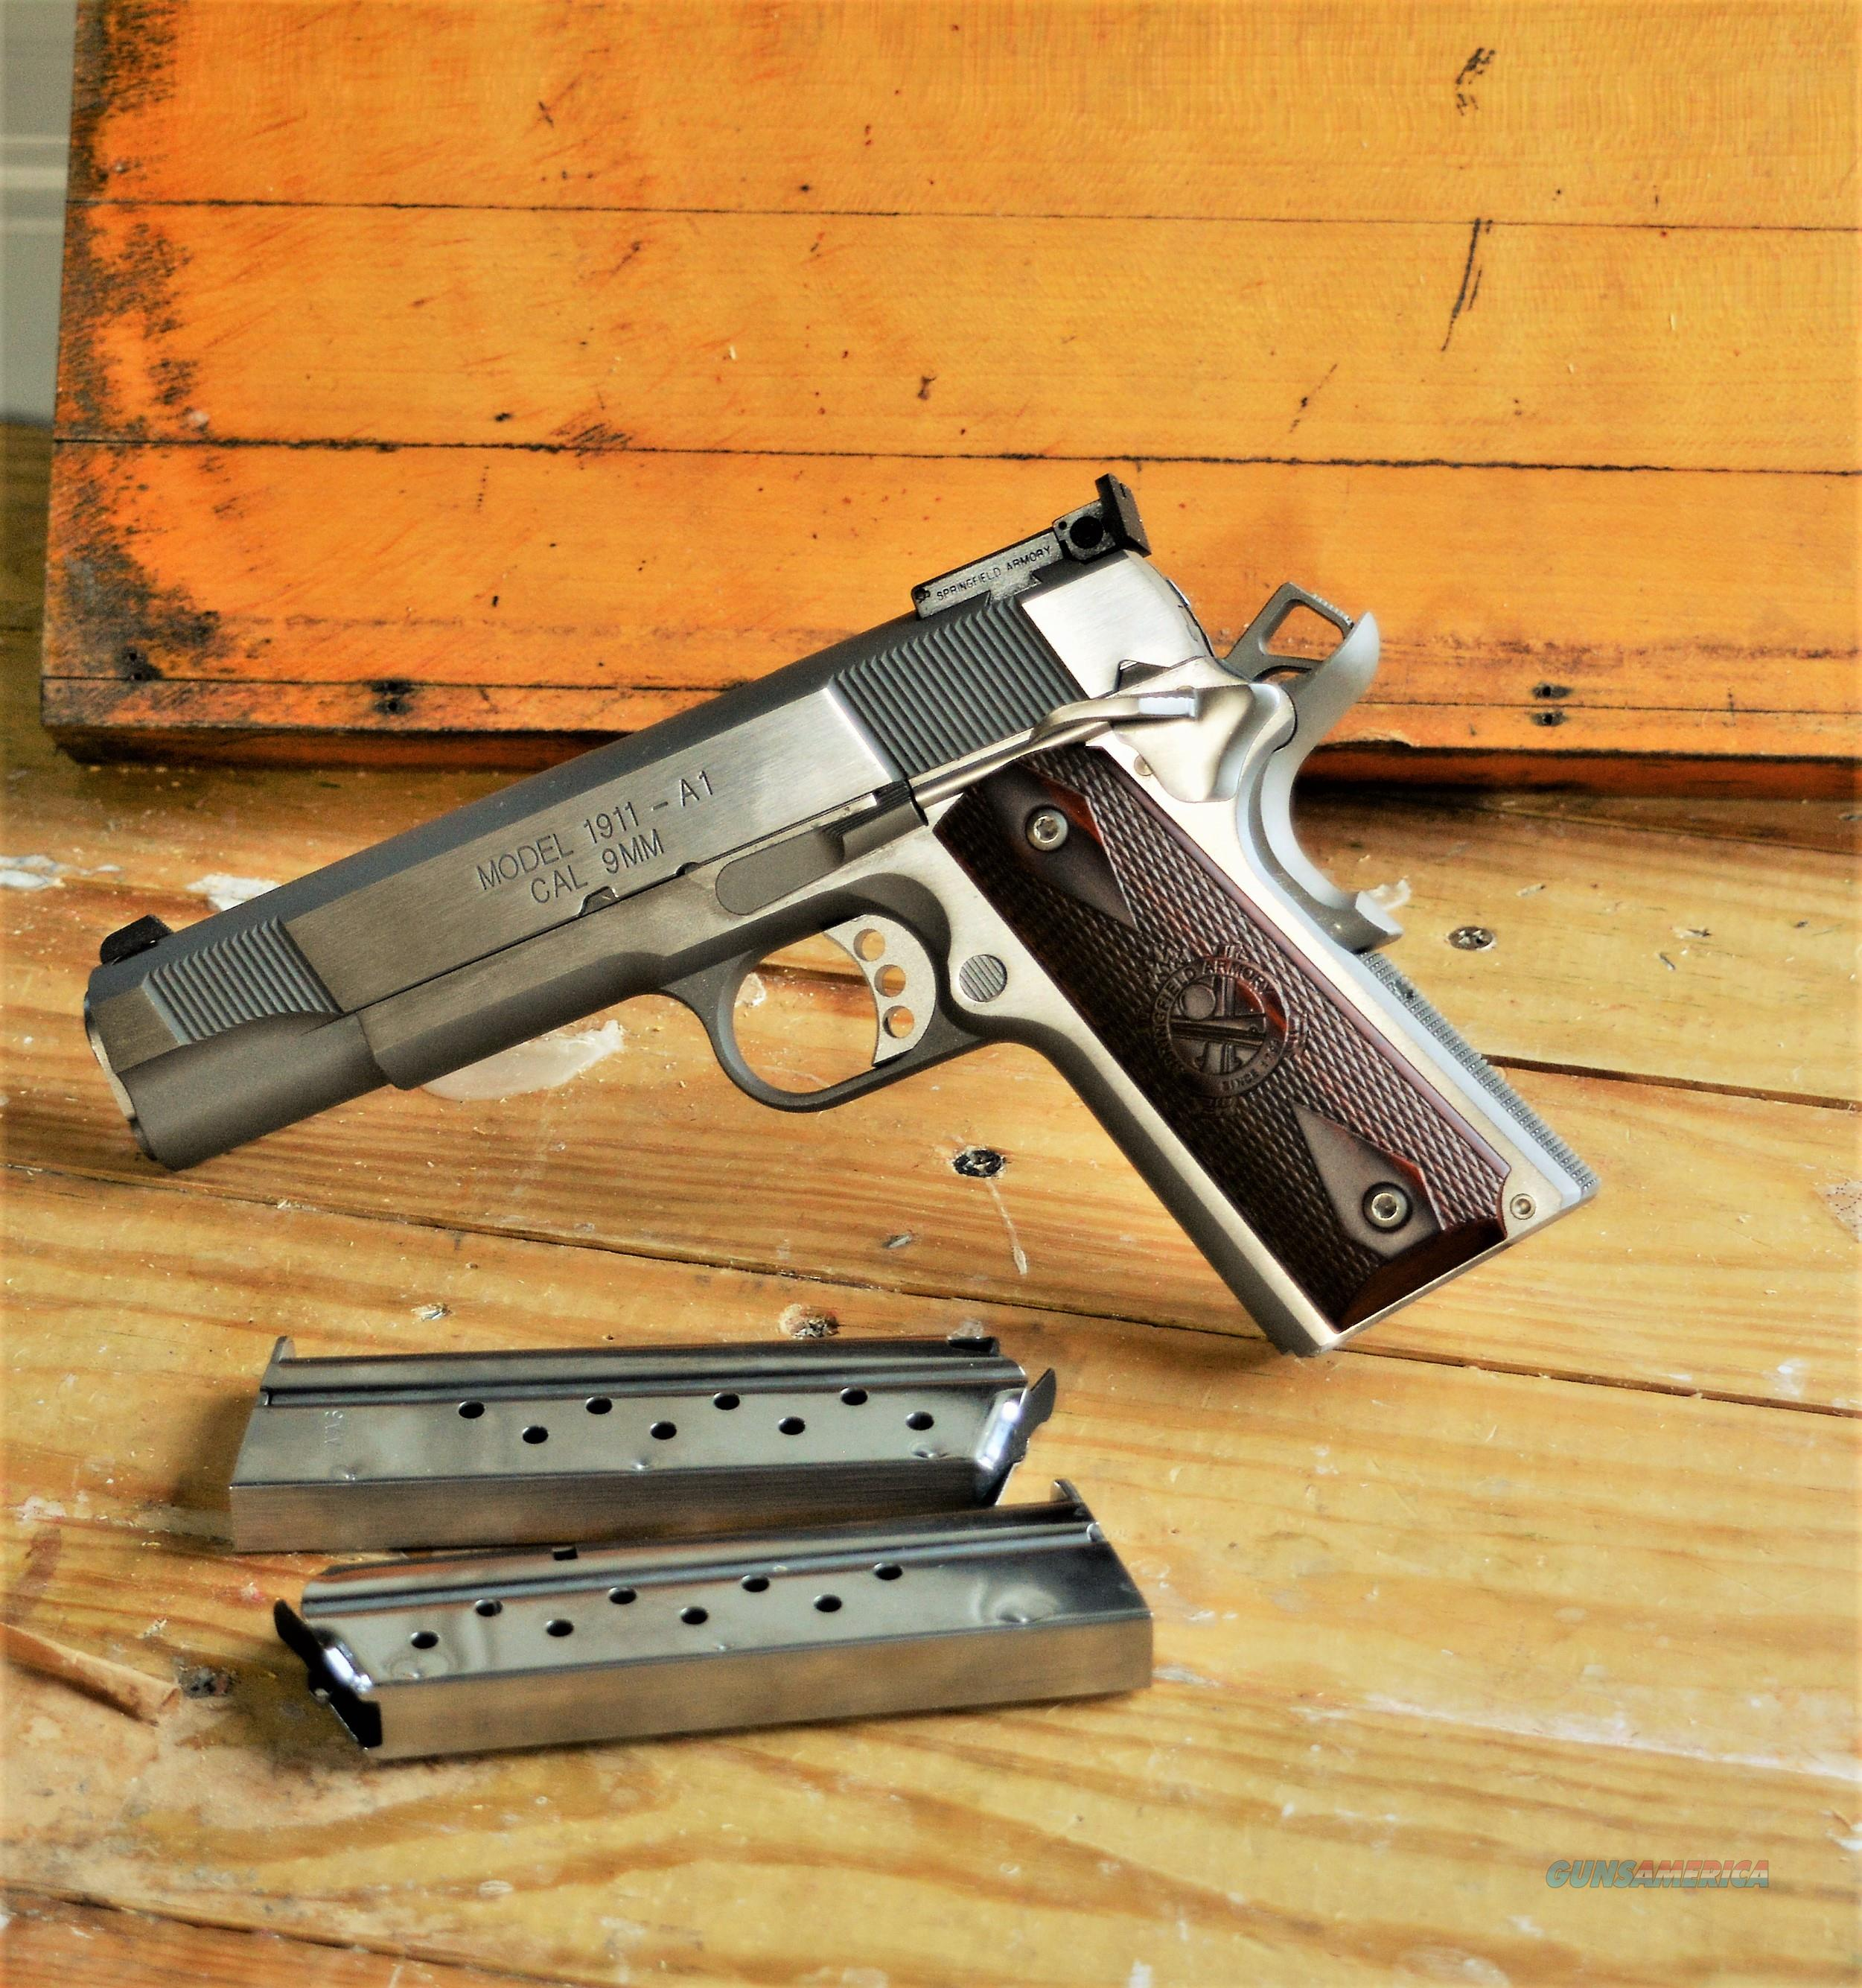 "$77  Sale Easy PAY CA SAFE Conceal and Carry  California  Approved  Springfield Armory 1911-A1  Match Grade Barrel 5"" TARGET model forged stainless steel 1911 Loaded Ambidextrous thumb 1911A1 beavertail grip safety lightweight PI9134LCA  Guns > Pistols > Springfield Armory Pistols > 1911 Type"